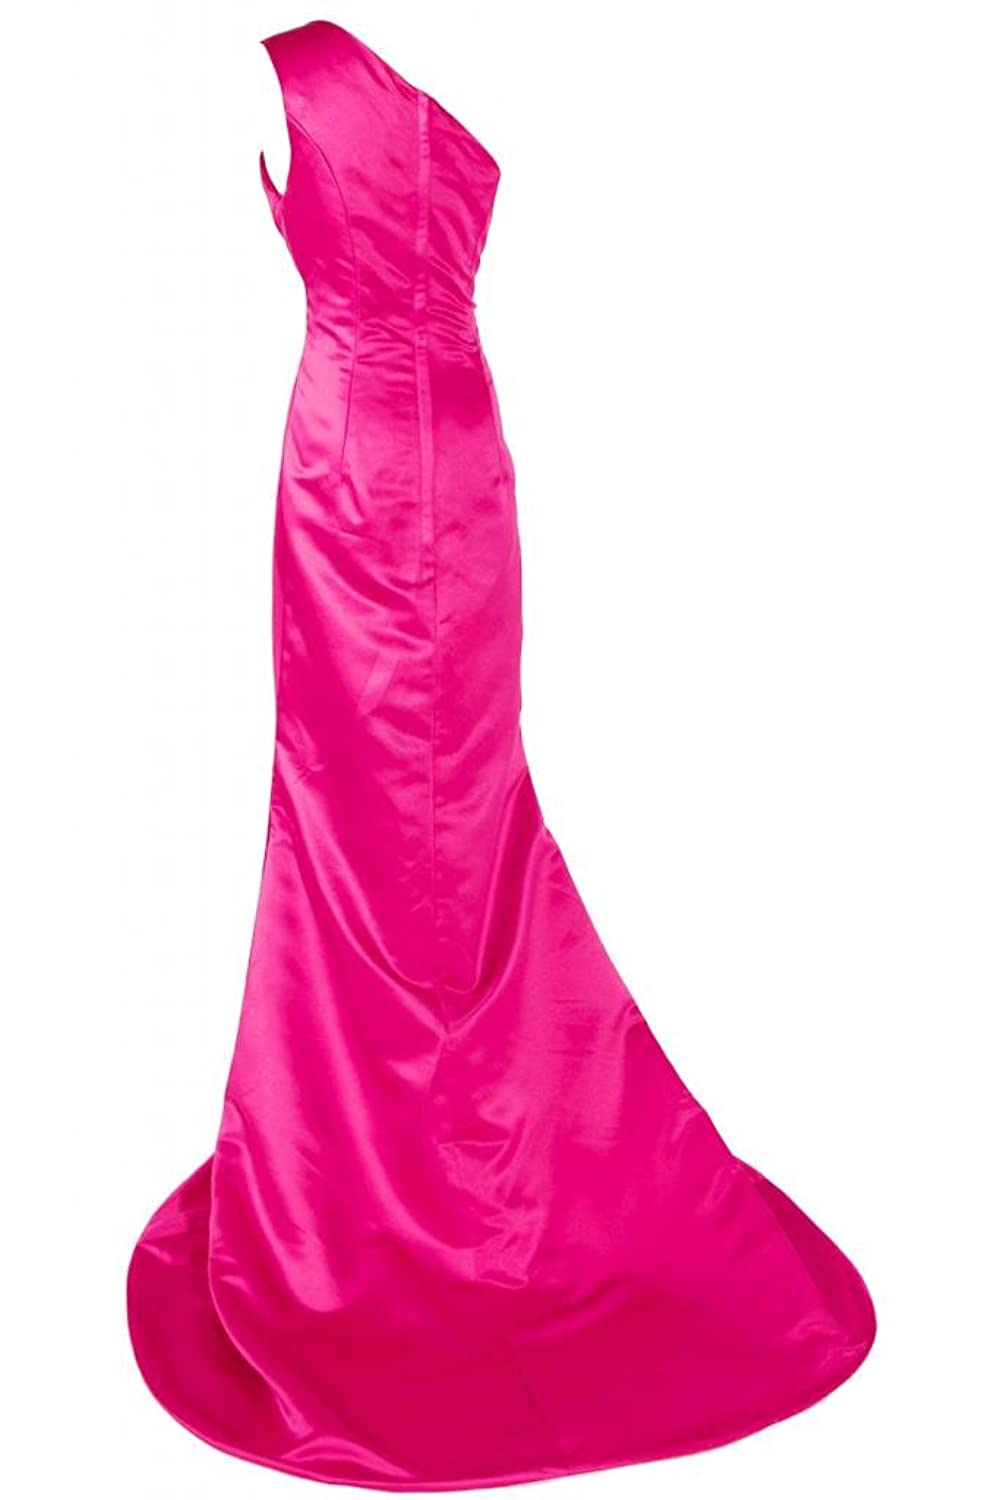 Sunvary Chic One-shoulder Satin Evening Dresses Pageant Dress Prom Party Maxi Gowns